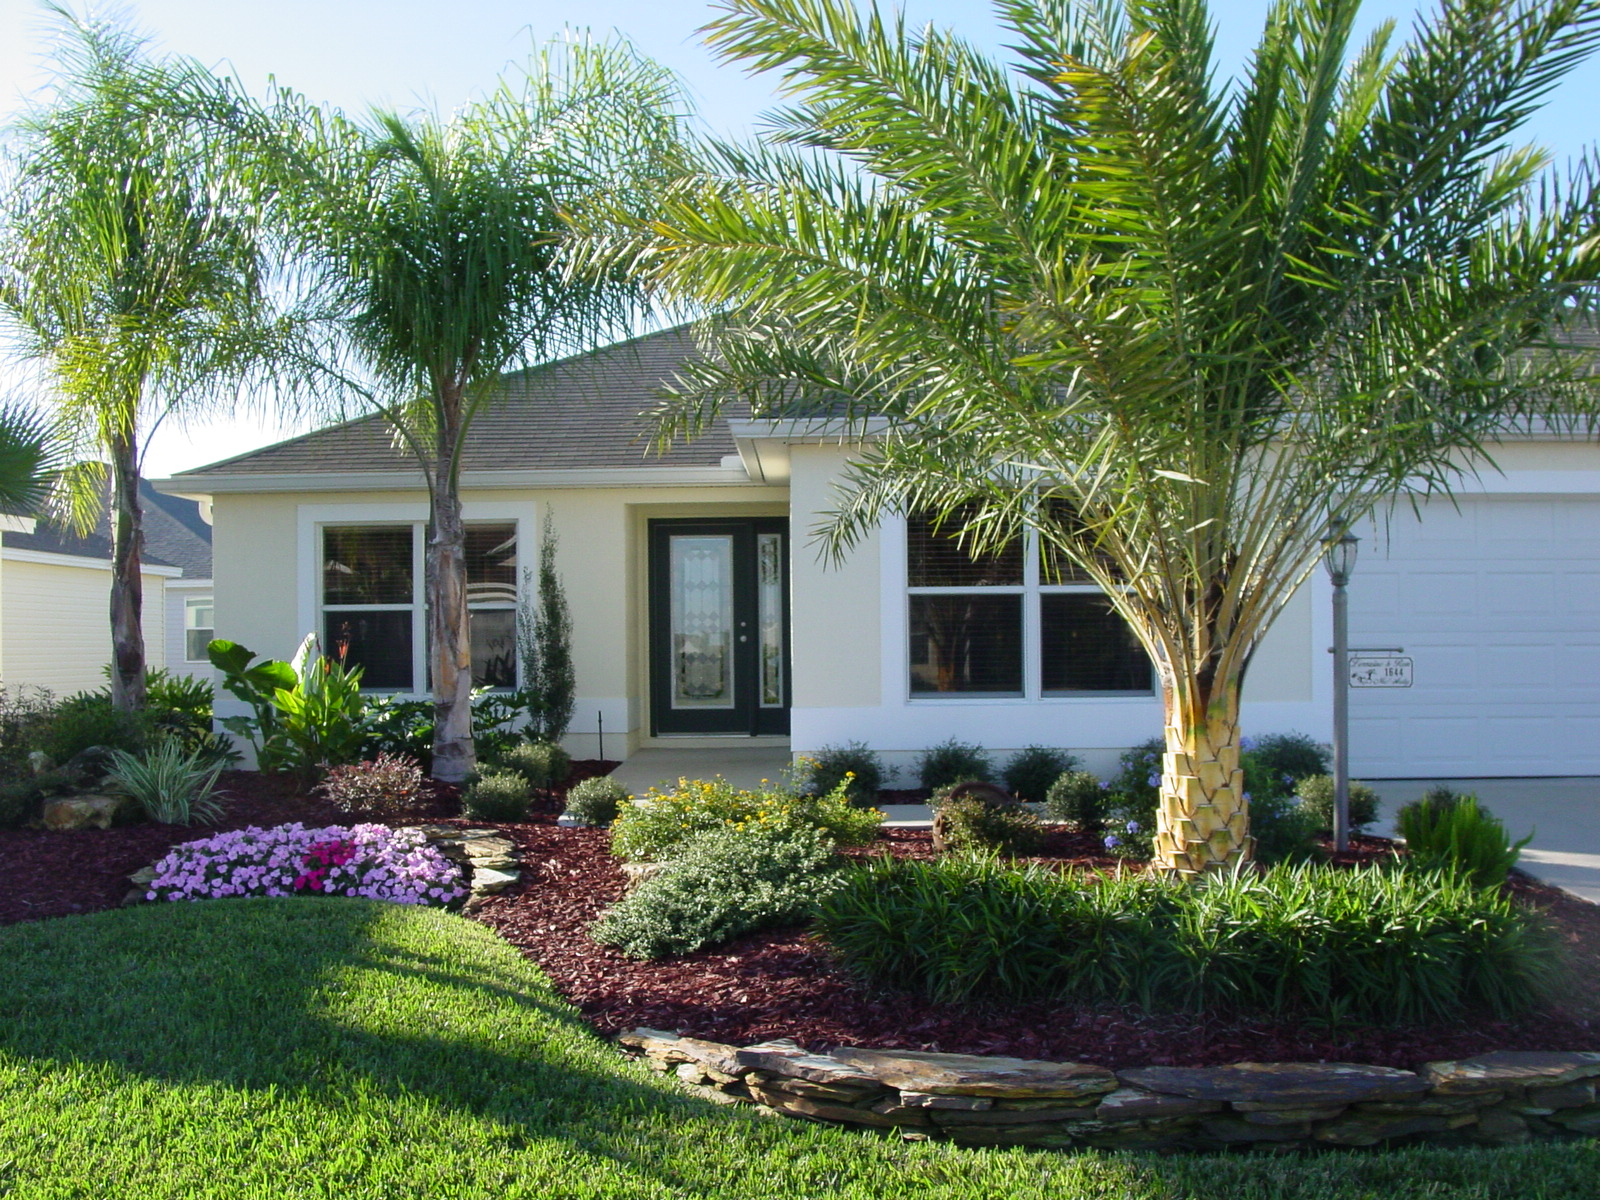 Florida garden landscape ideas photograph rons landscaping for Home front landscaping